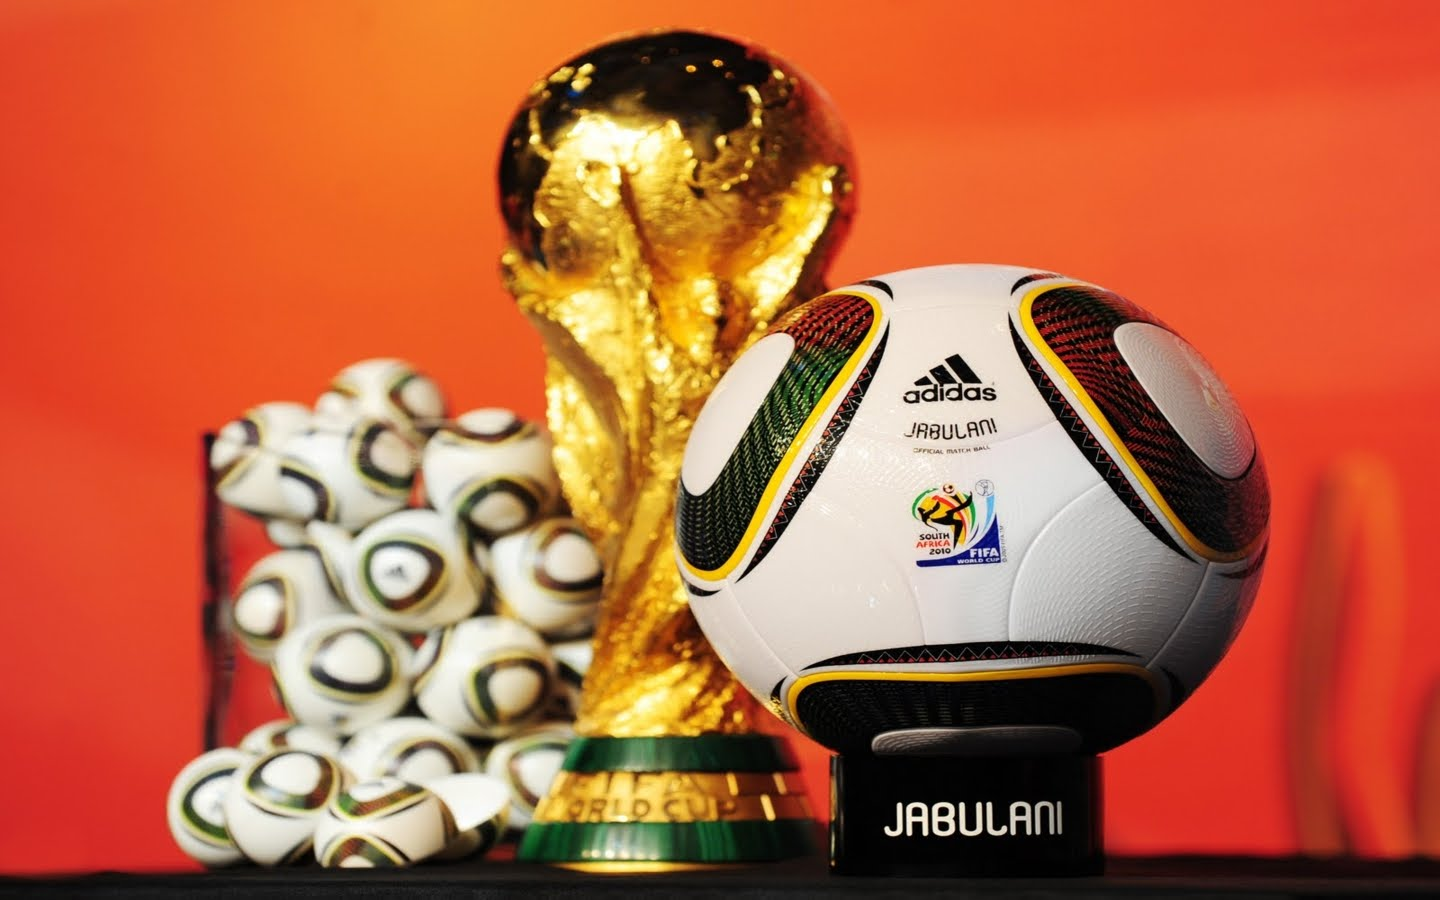 World Cup 2010 Wallpaper